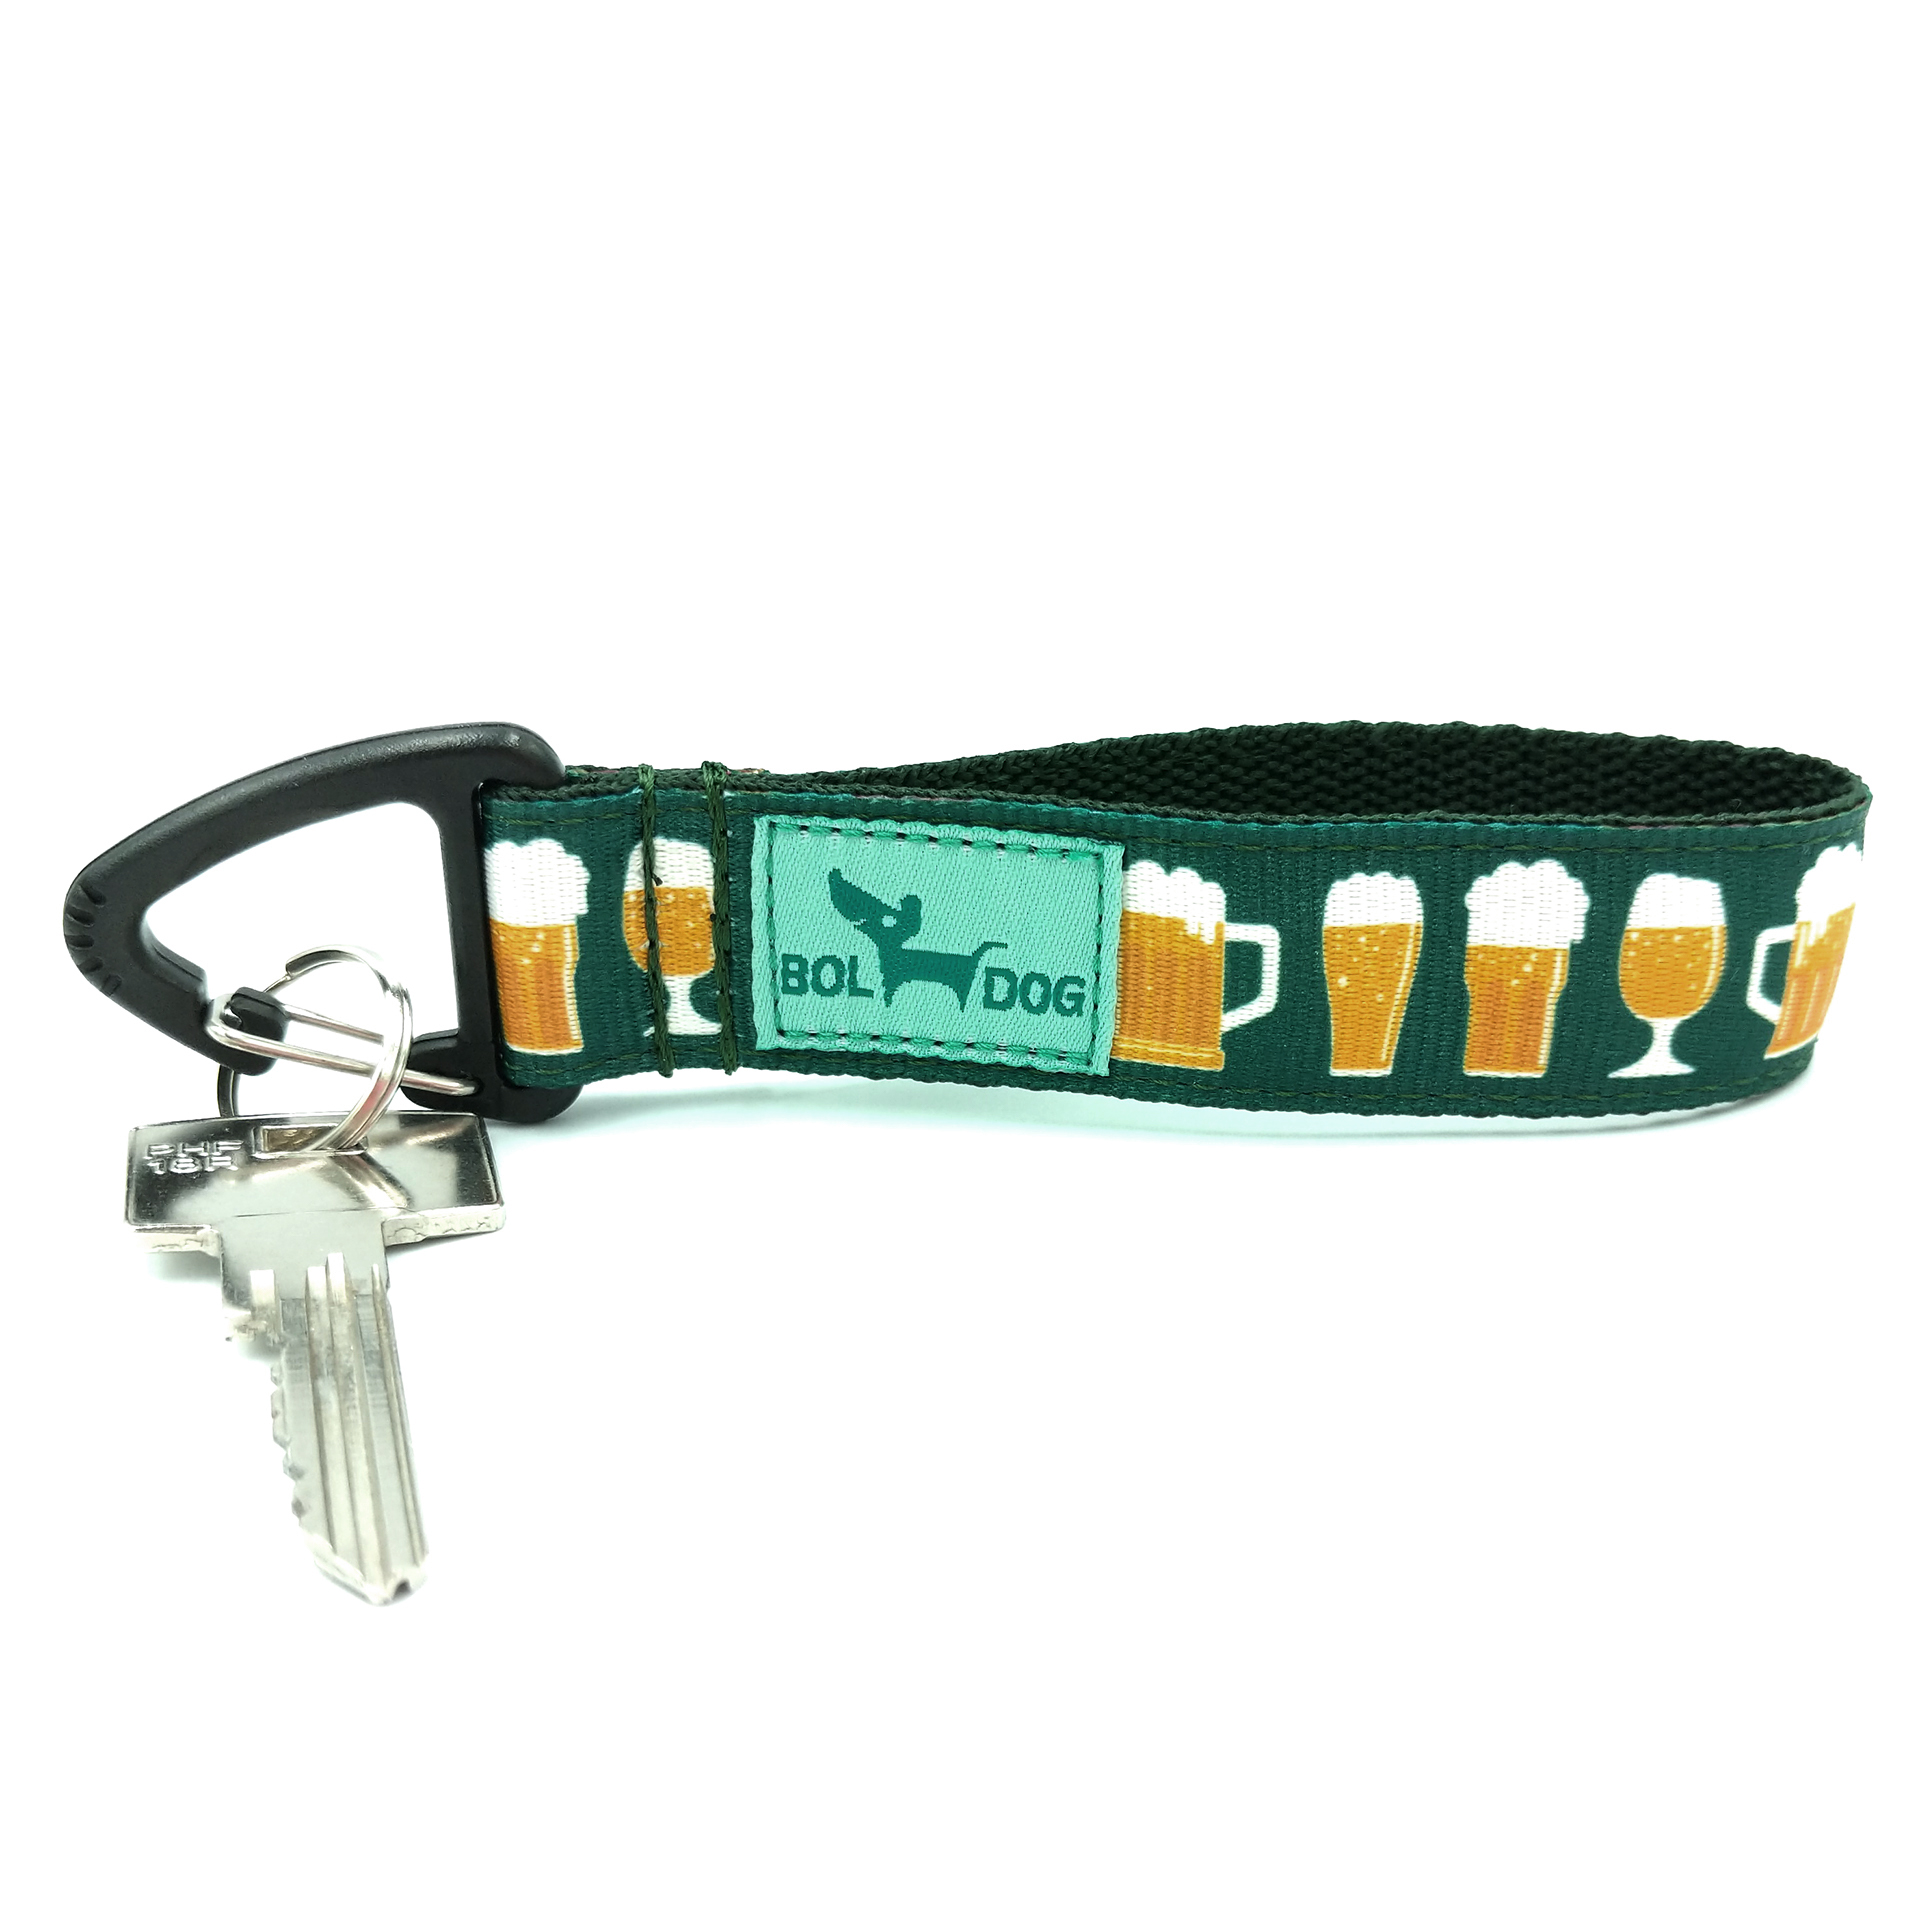 Beer key holder